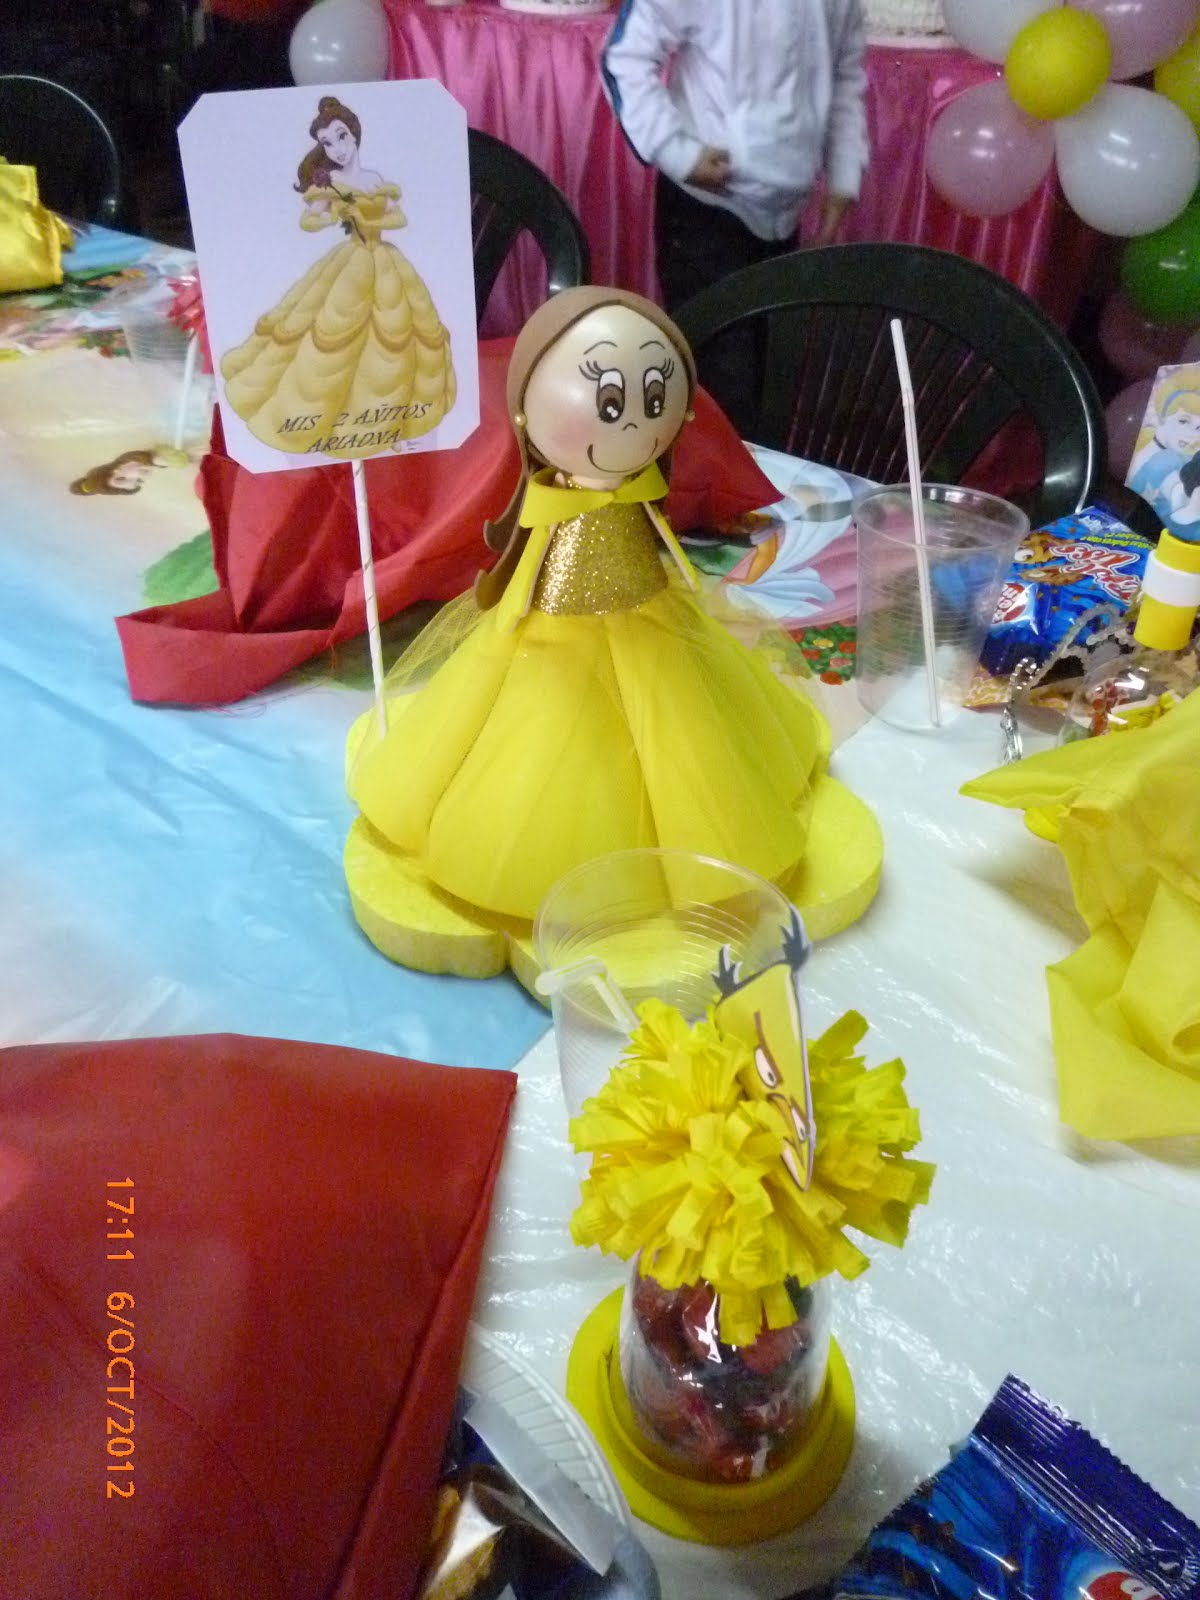 Decoraciones y cotillon de cumplea os fiesta de princesas for Decoracion cumpleanos princesas